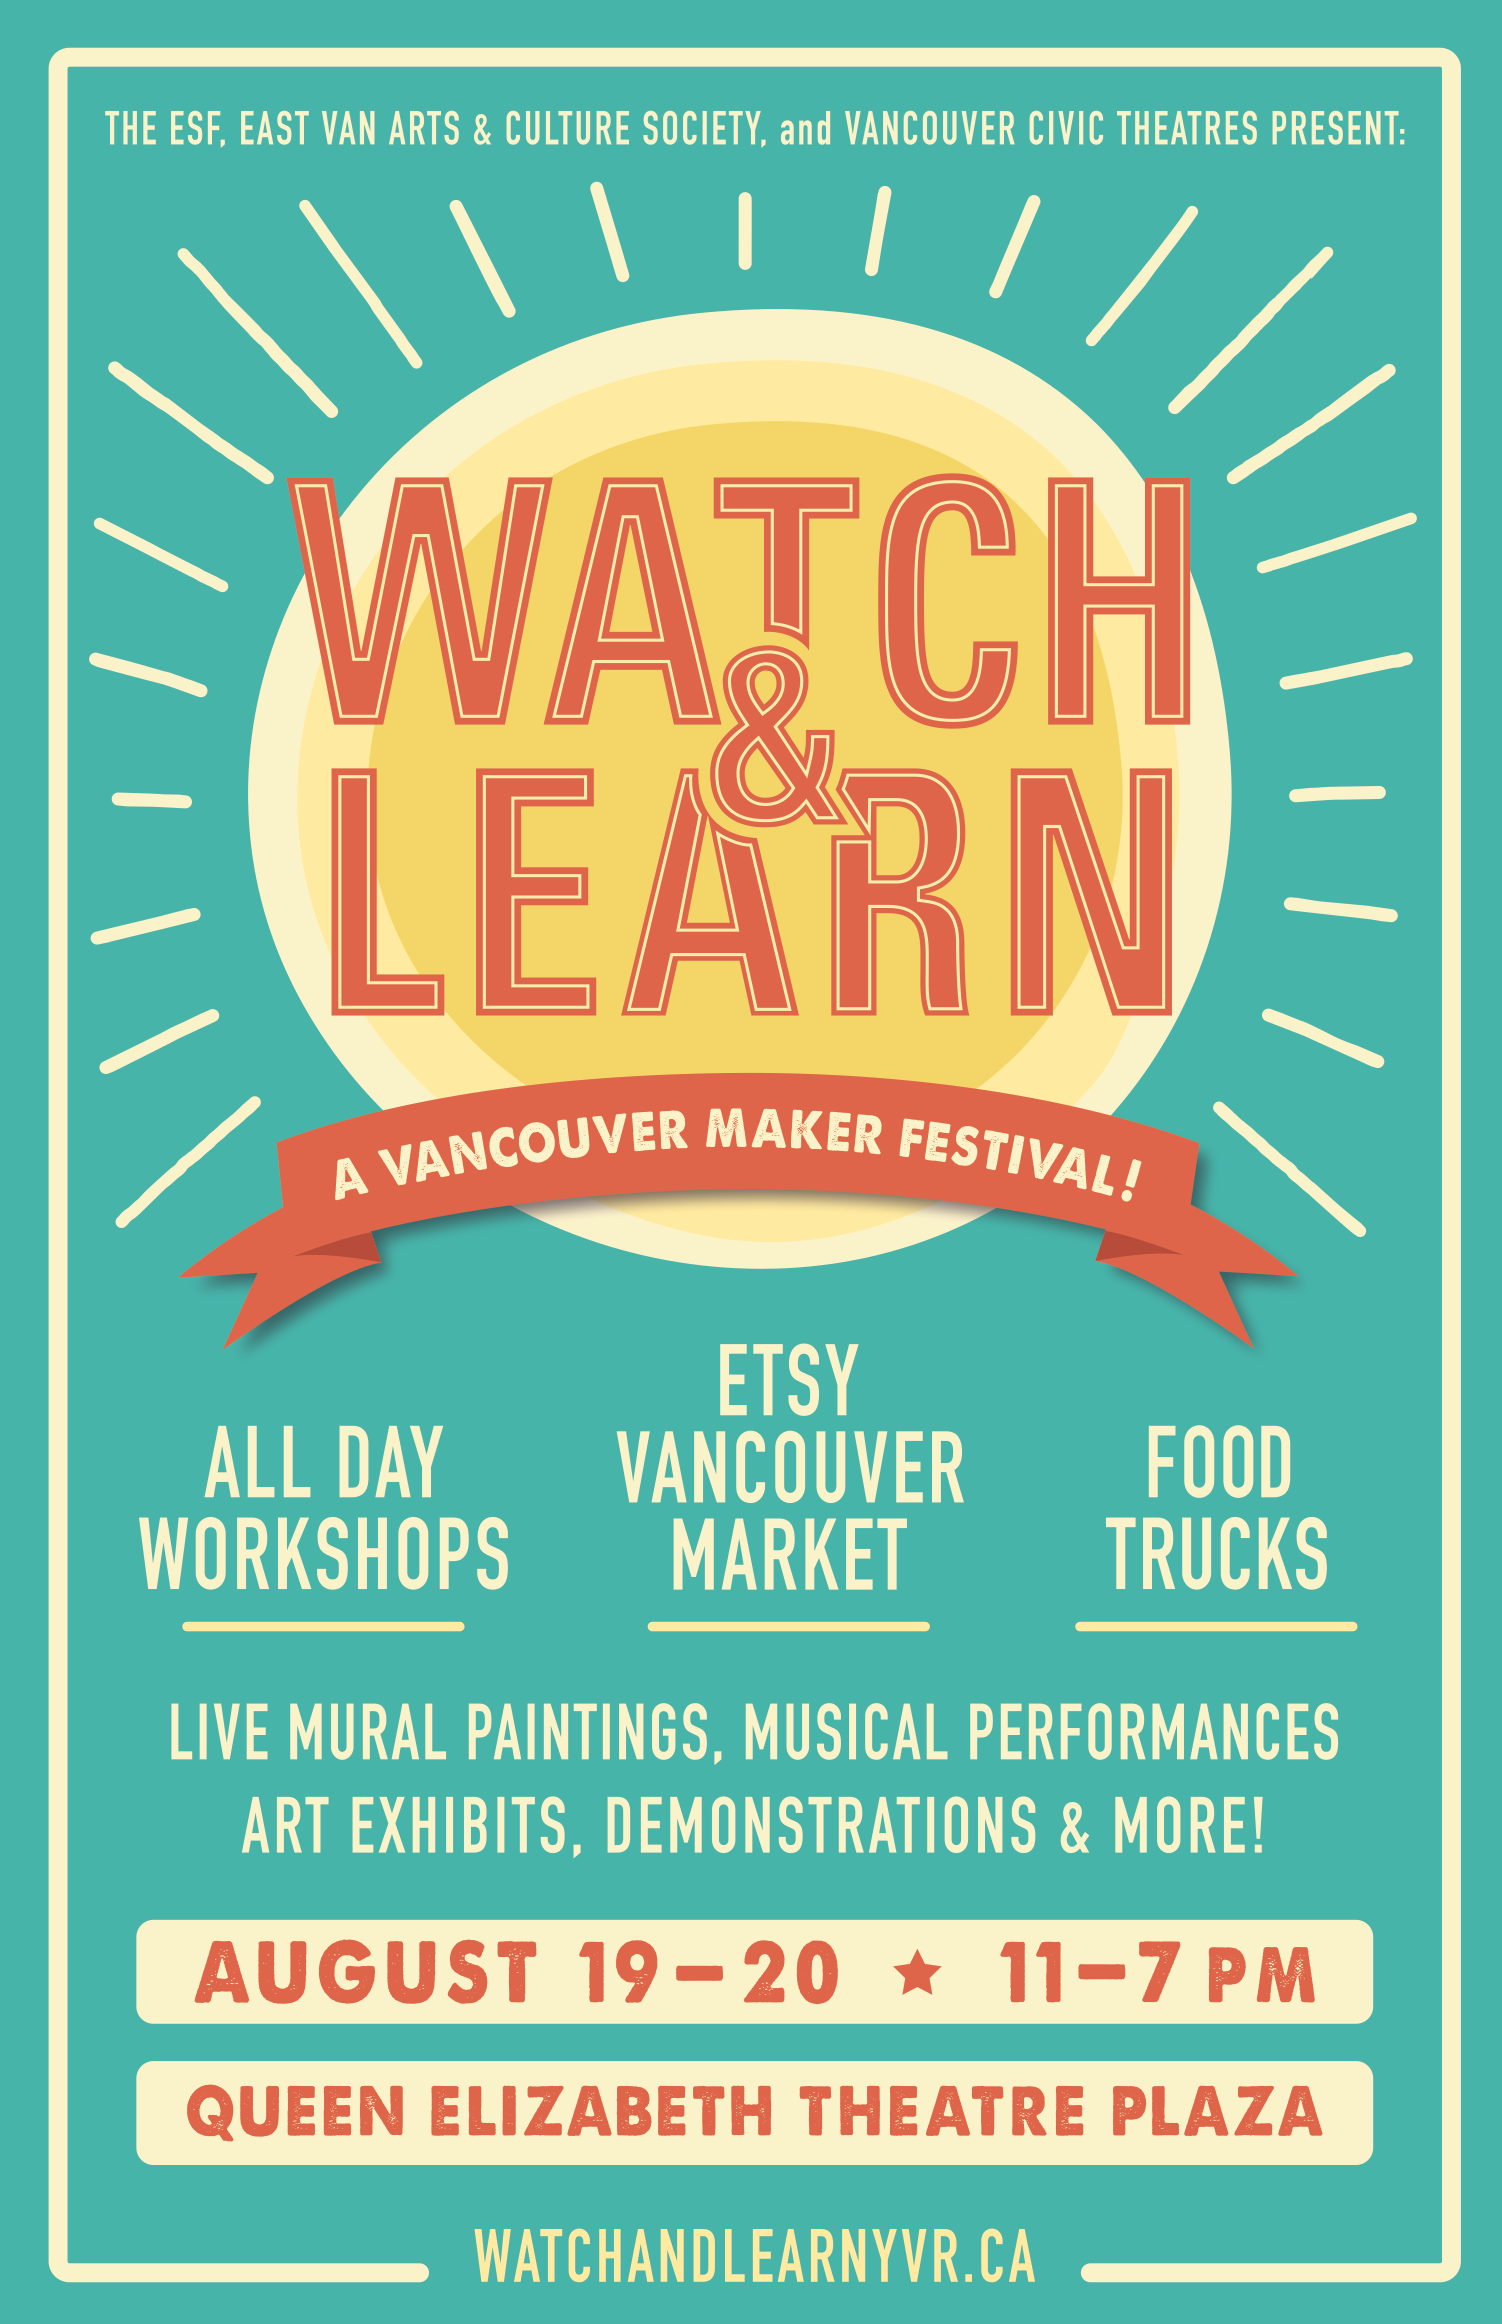 Poster Design for the Eastside Flea/Etsy Market Summer event promoting creative workshops! B